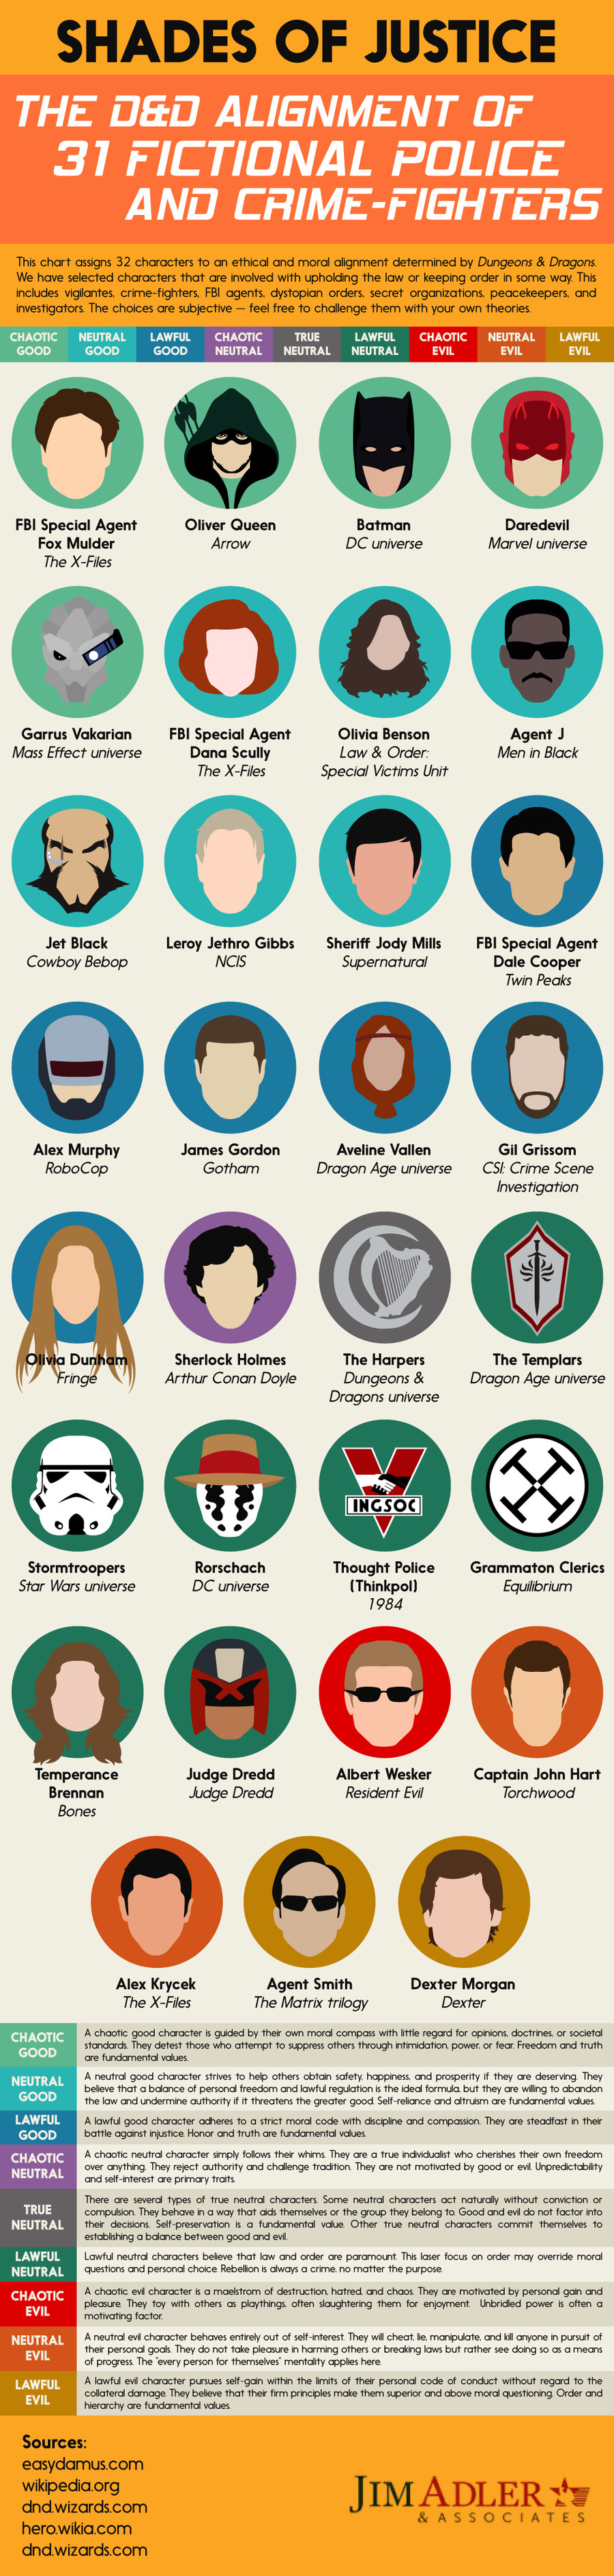 D&D Alignments of 31 Fictional Police. Agree or disagree?. littest DEAD ALIGNMENT BF IA' I FIE TRINAL POLICE llc NEUTRAL LAWFUL CHAO' llc mu: LAWFUL anon: NEUTR